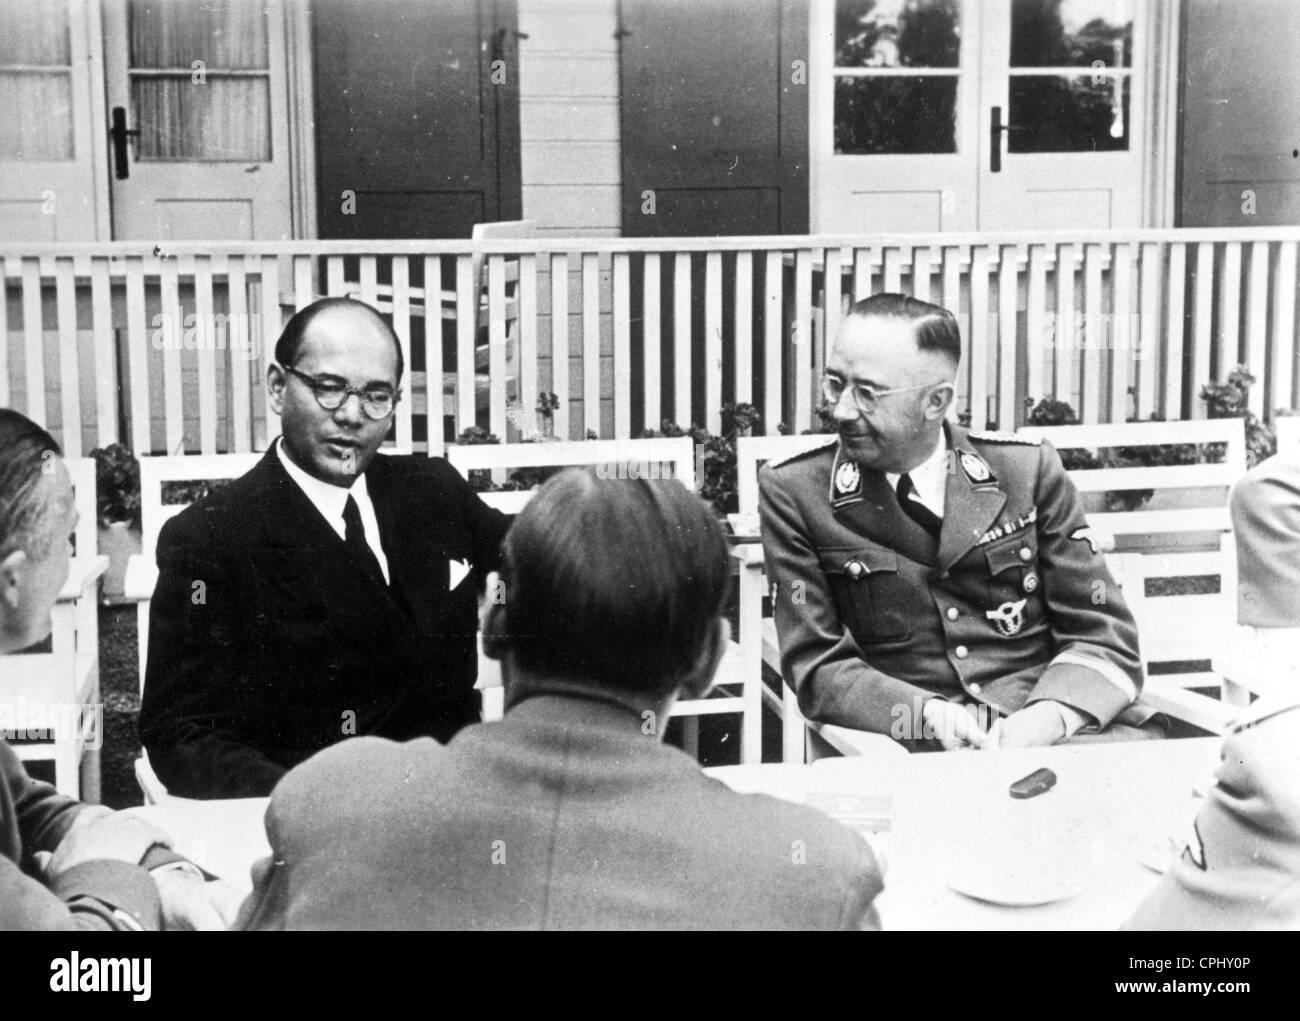 Heinrich Himmler in discussion with Subhas Chandra Bose at German Headquarters, 1942 (b/w photo) - Stock Image